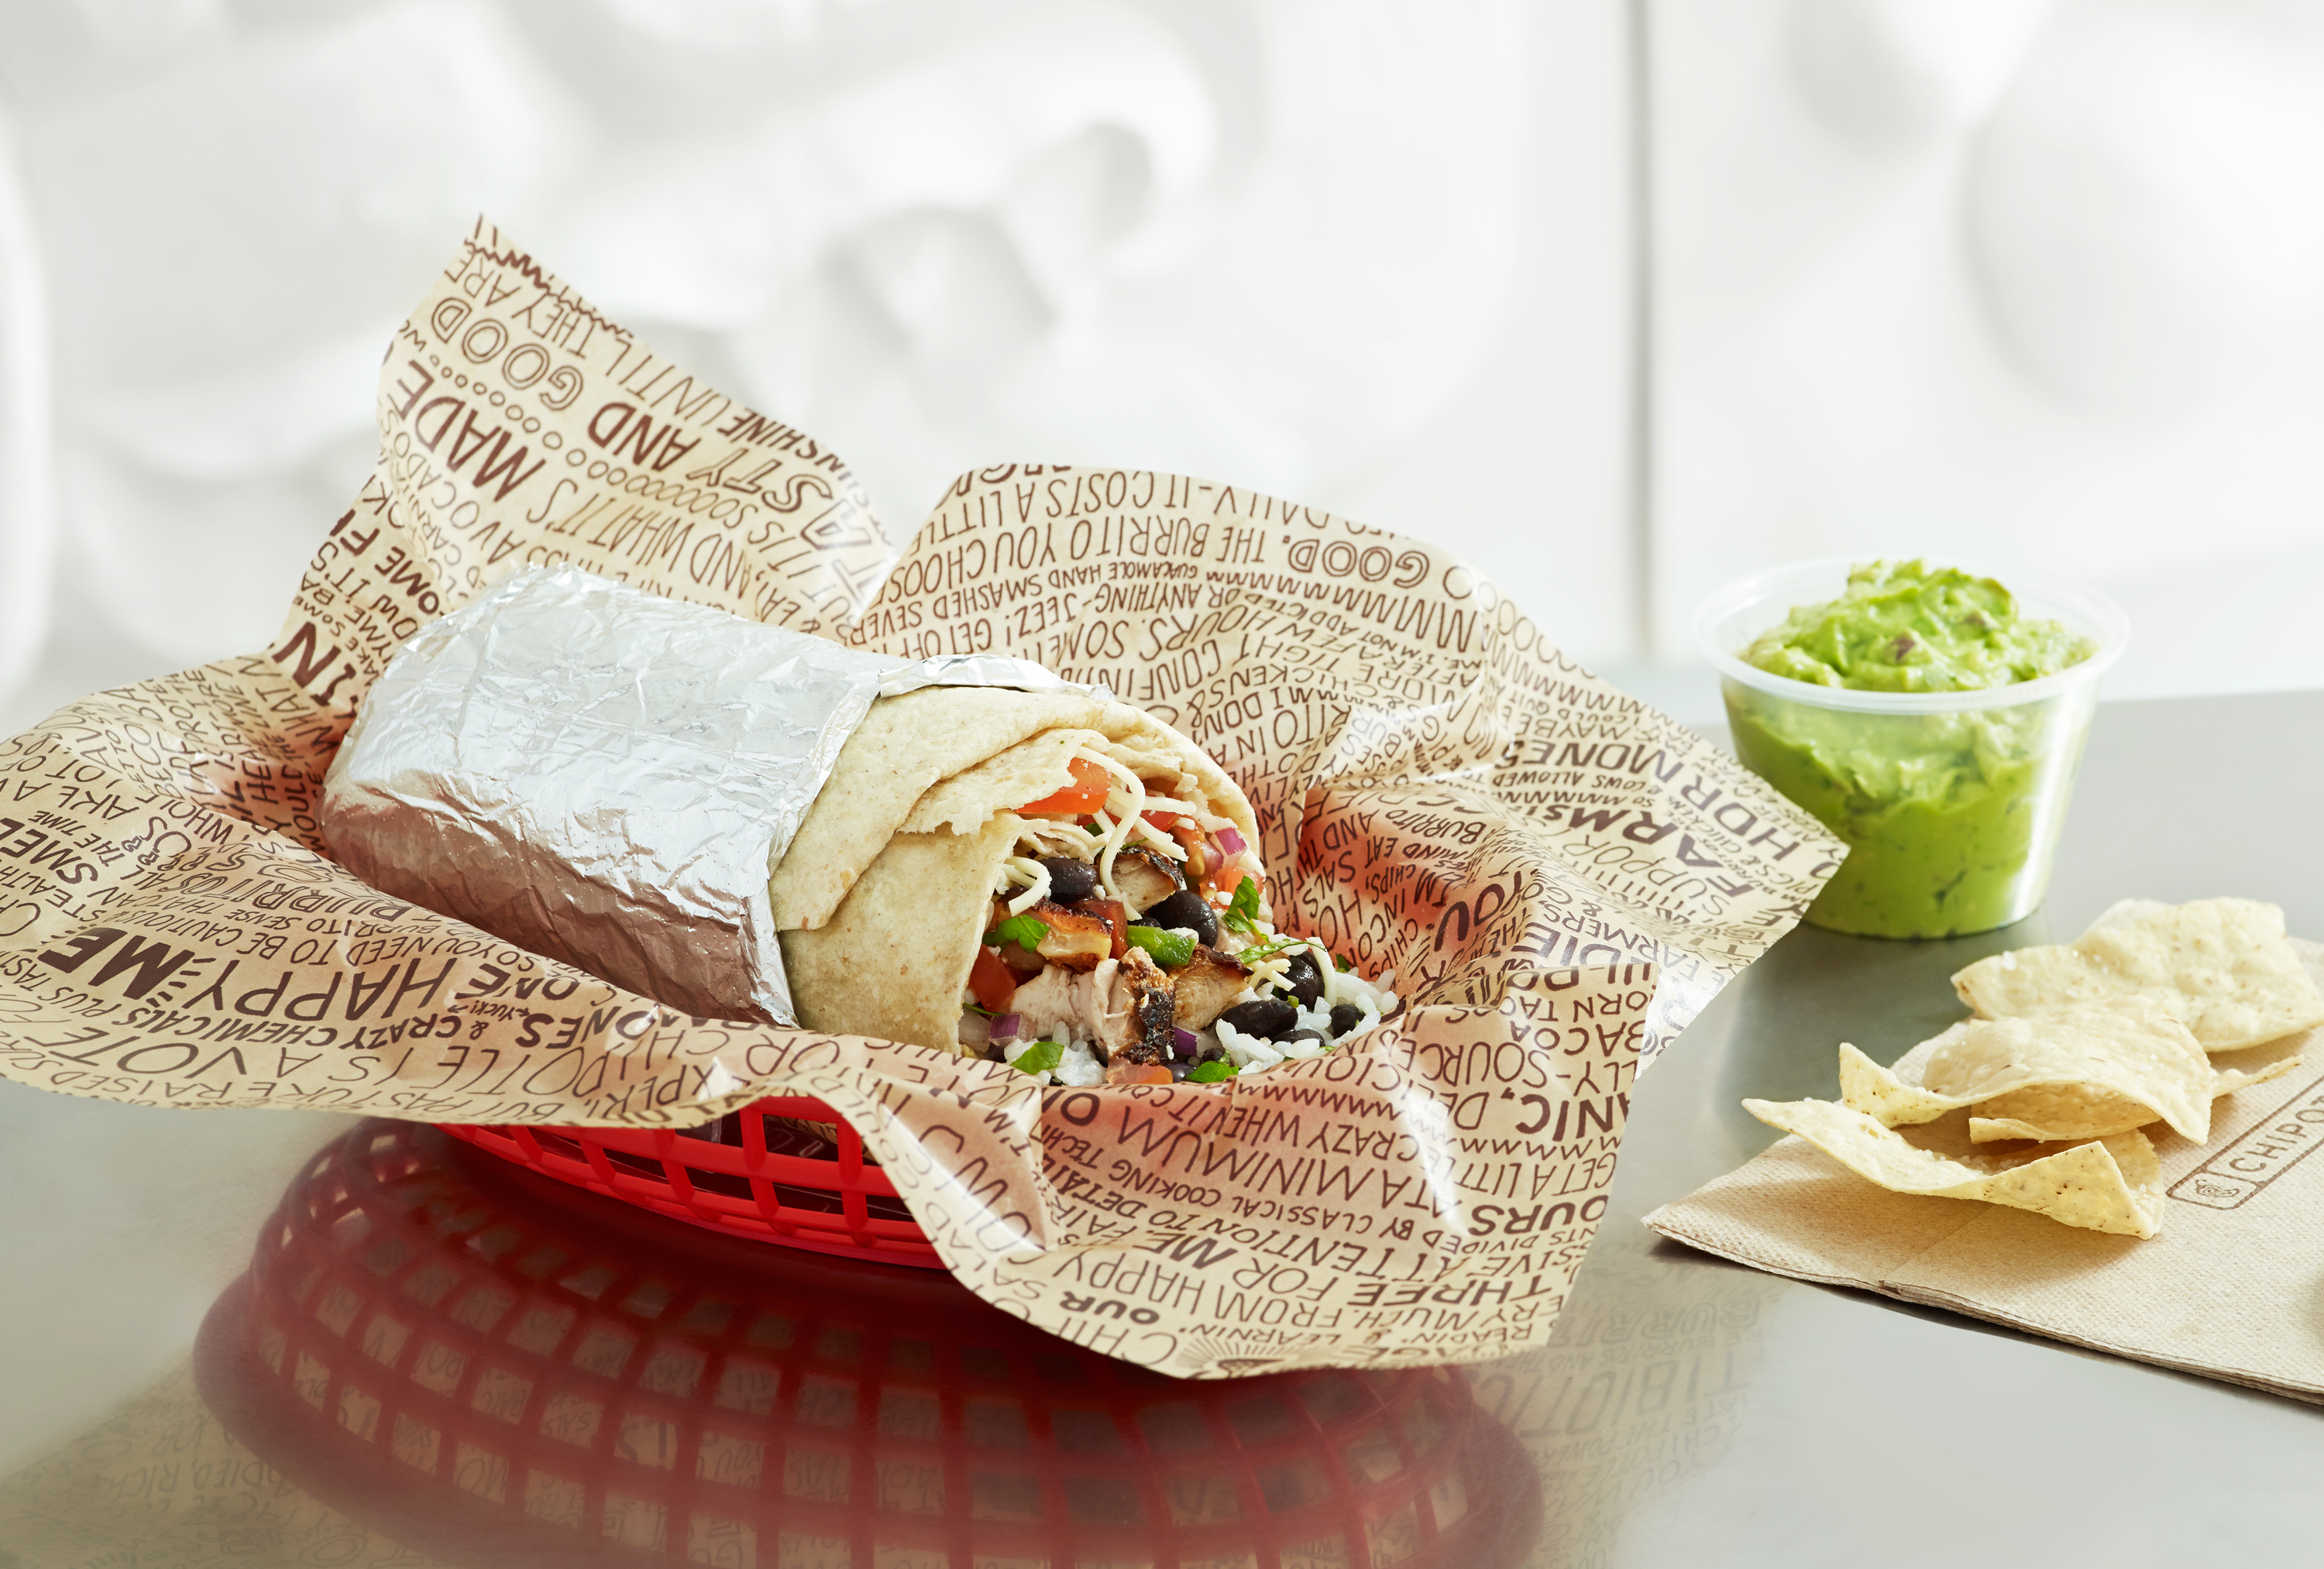 How to Order Healthy at Chipotle - EatingWell